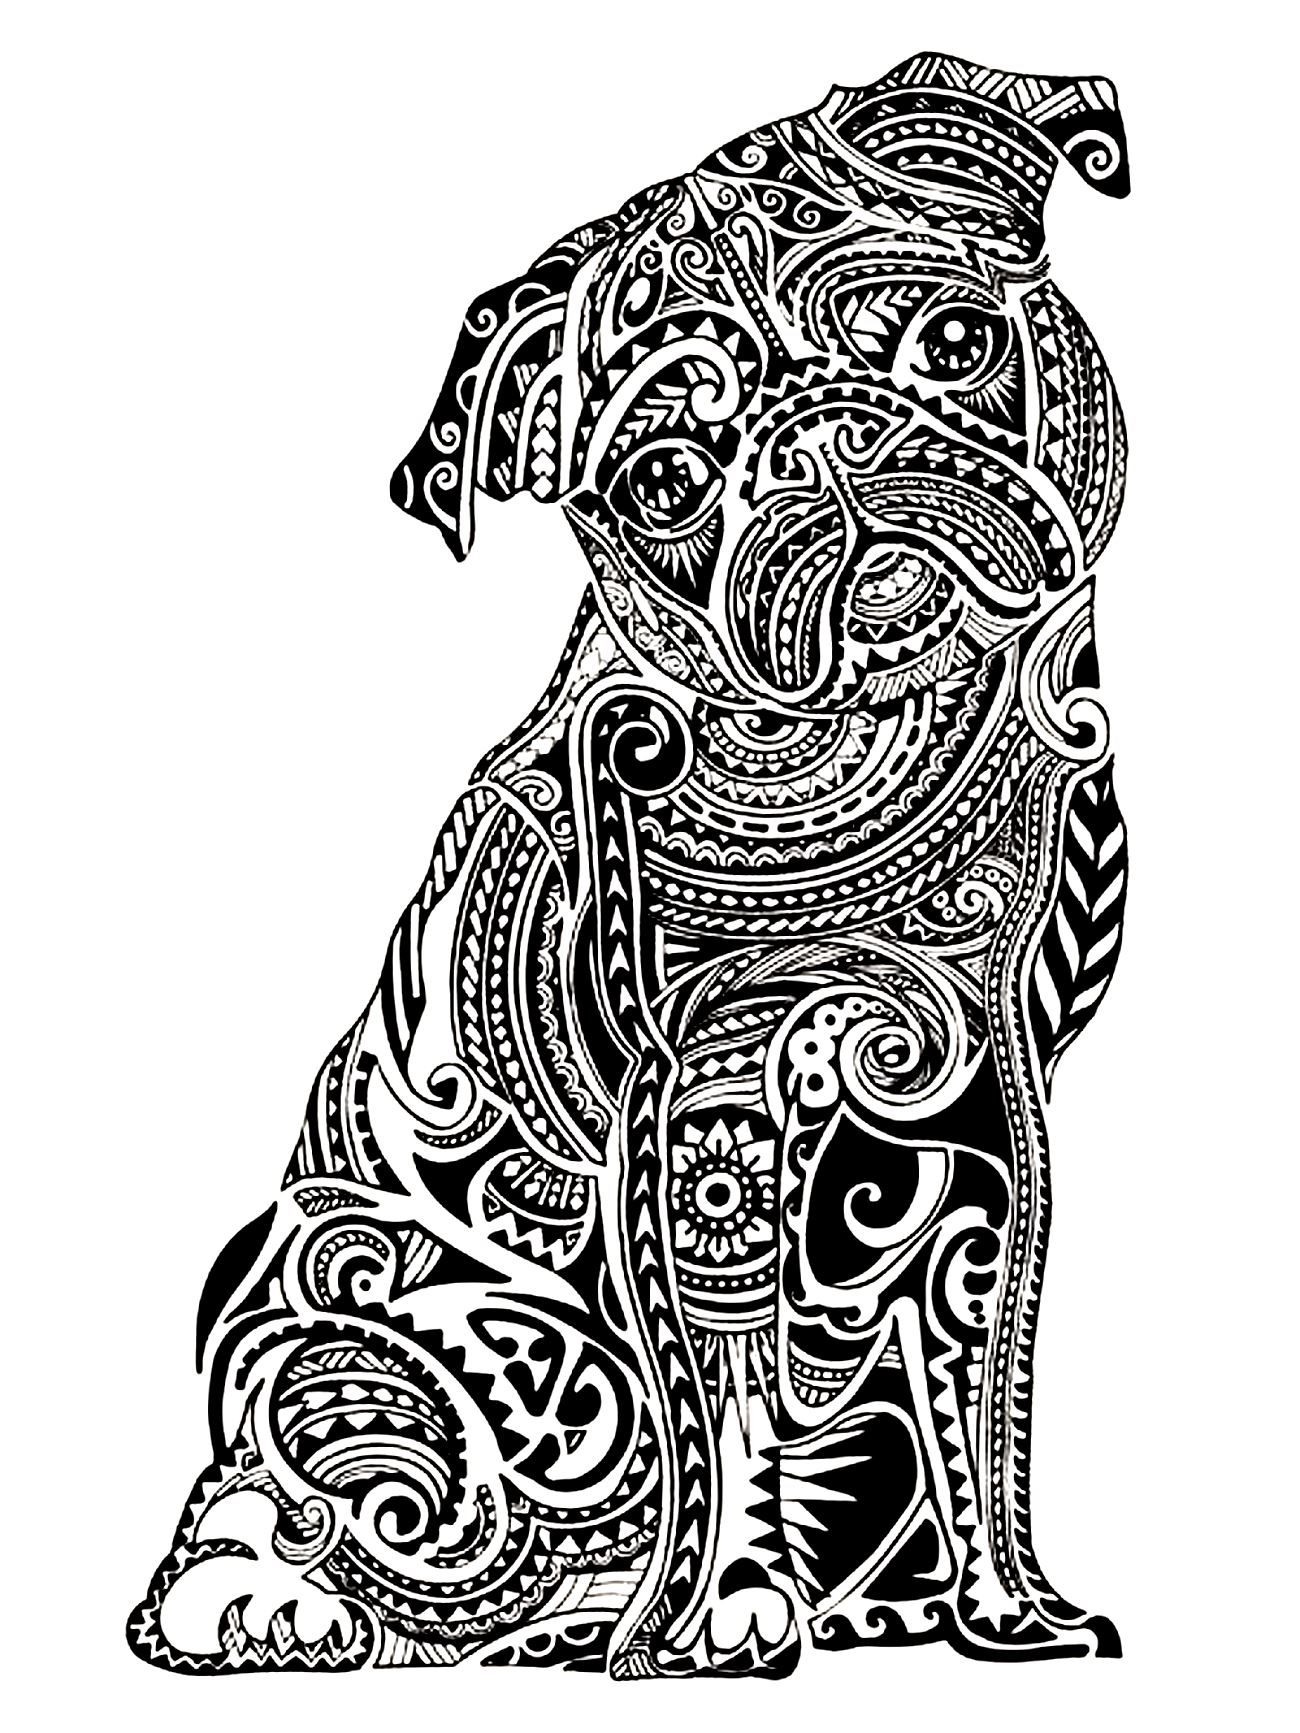 coloring pages for adults difficult animals bulldog Coloring pages colouring adult detailed advanced printable  coloring pages for adults difficult animals